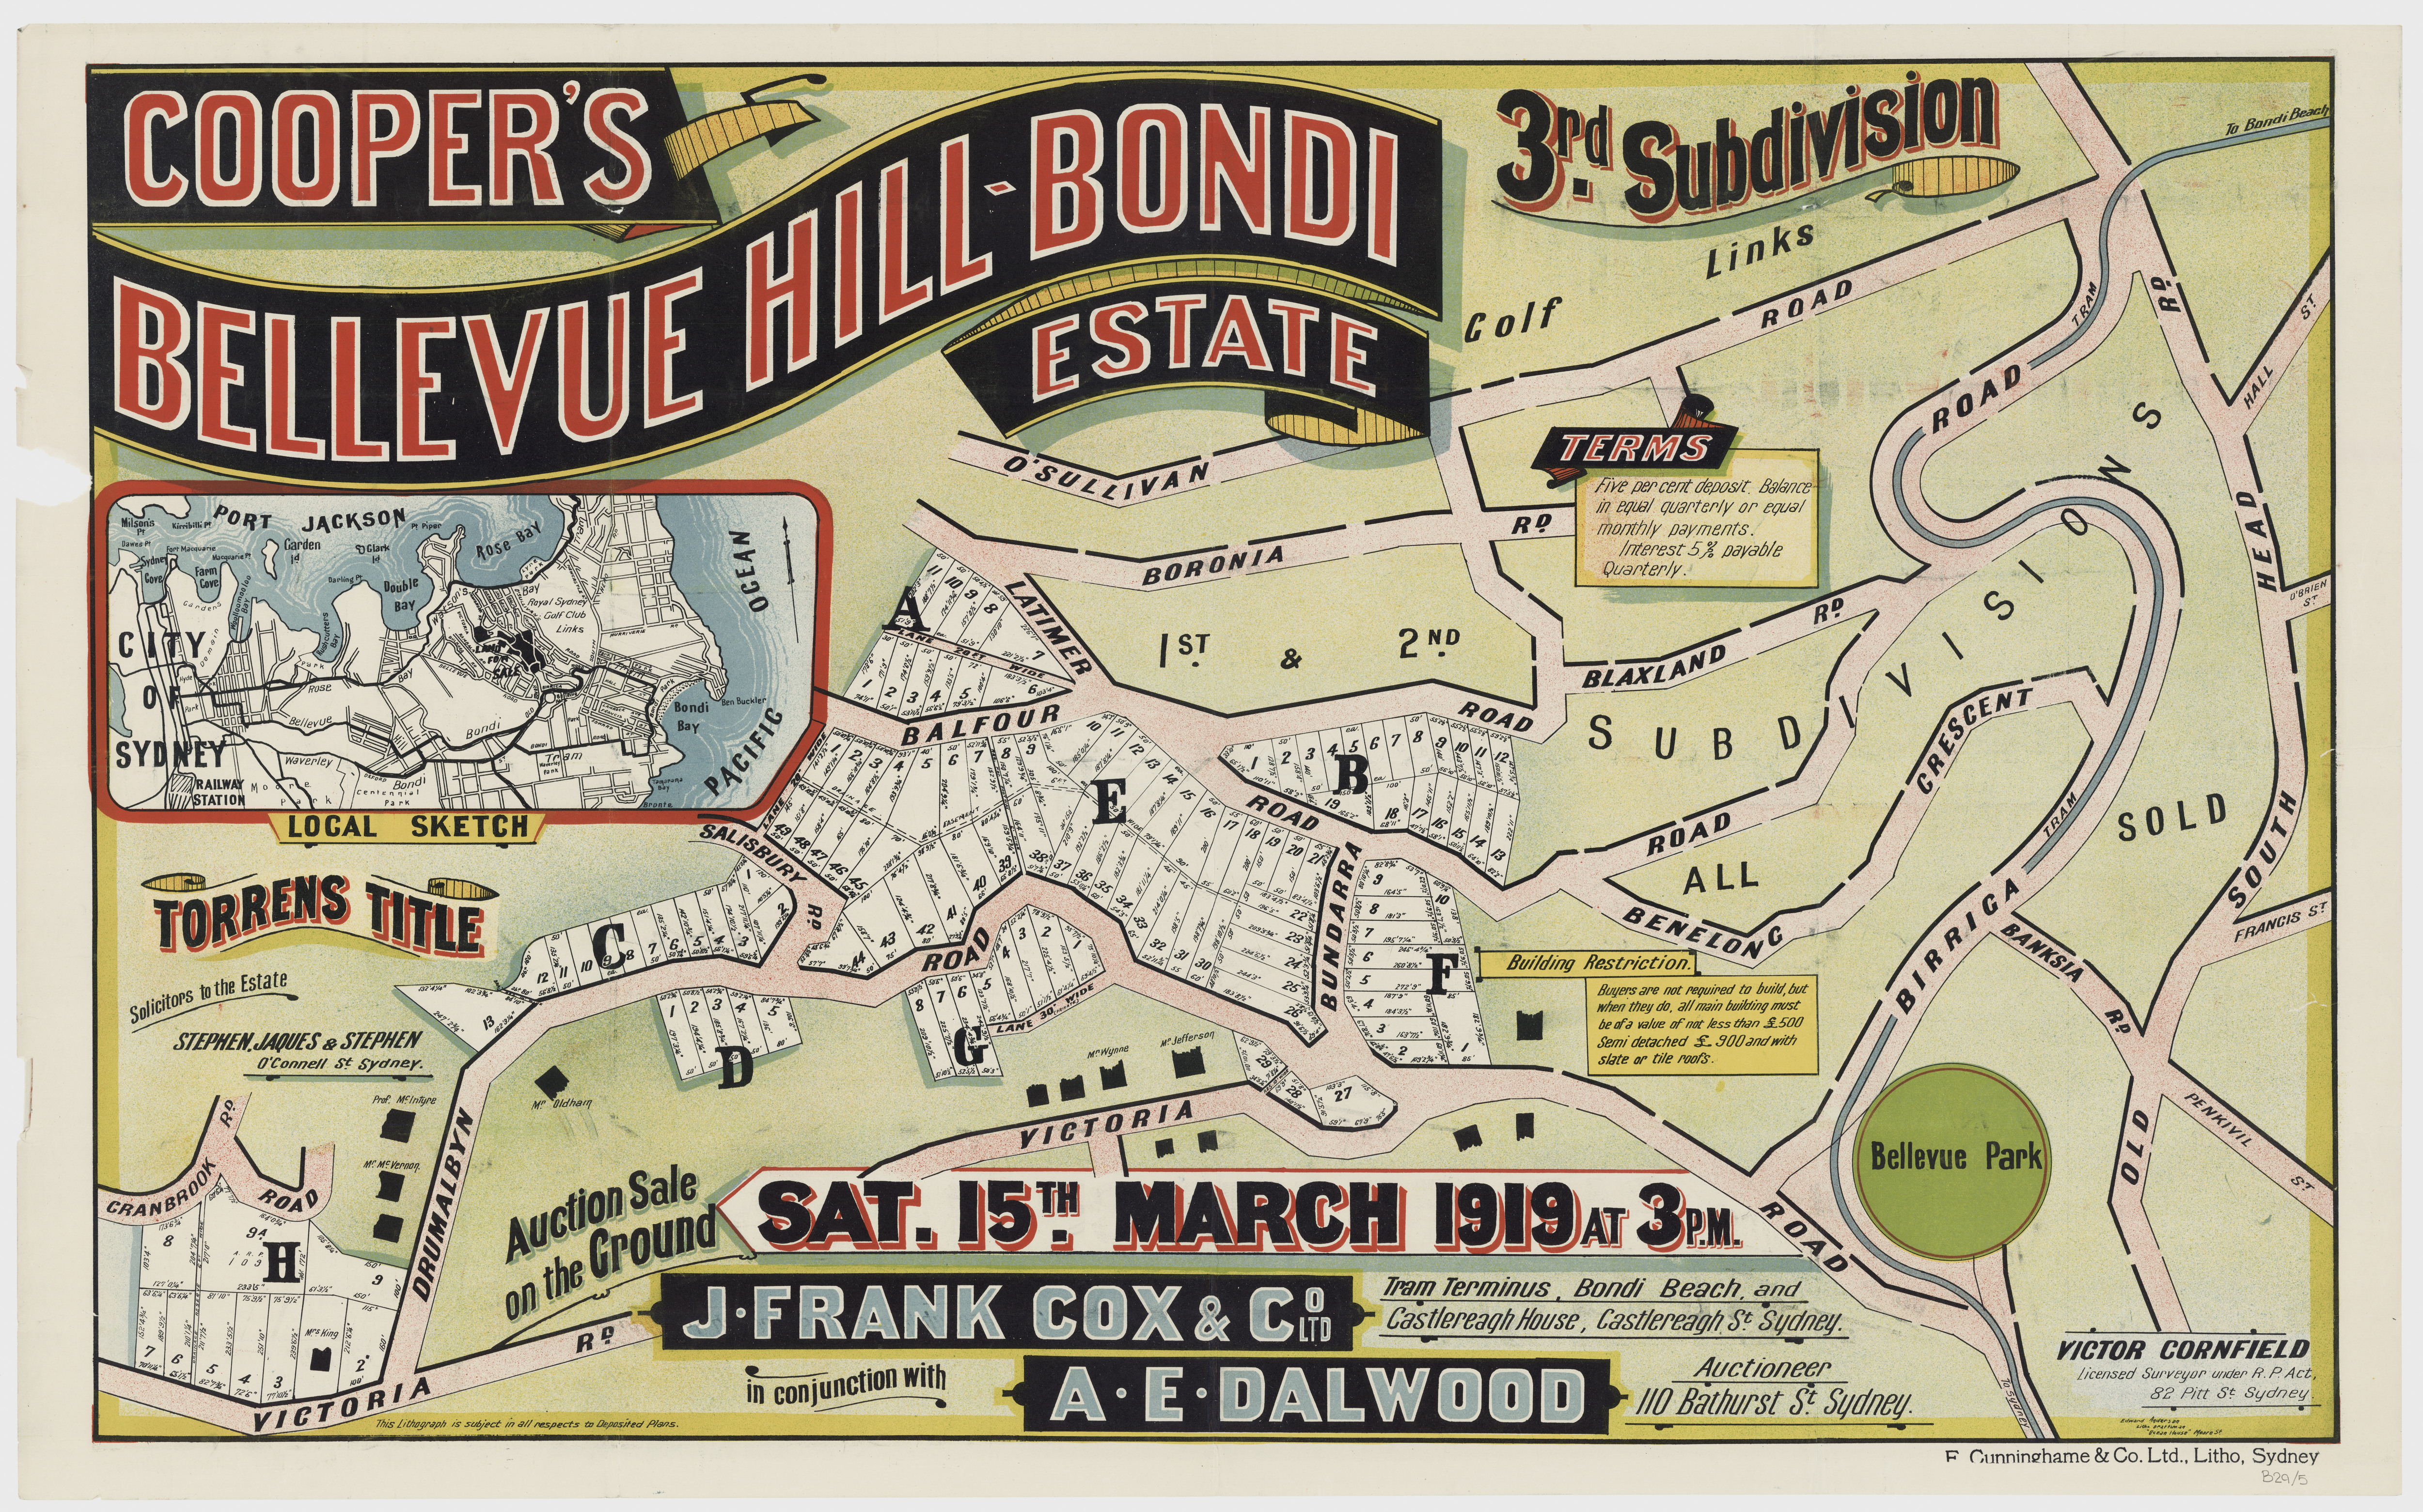 Sales plan for the third subdivision of the Cooper's Bellevue Hill-Bondi Estate offered for sale in 1919.  Image: From the collections of the State Library of New South Wales  c028640005